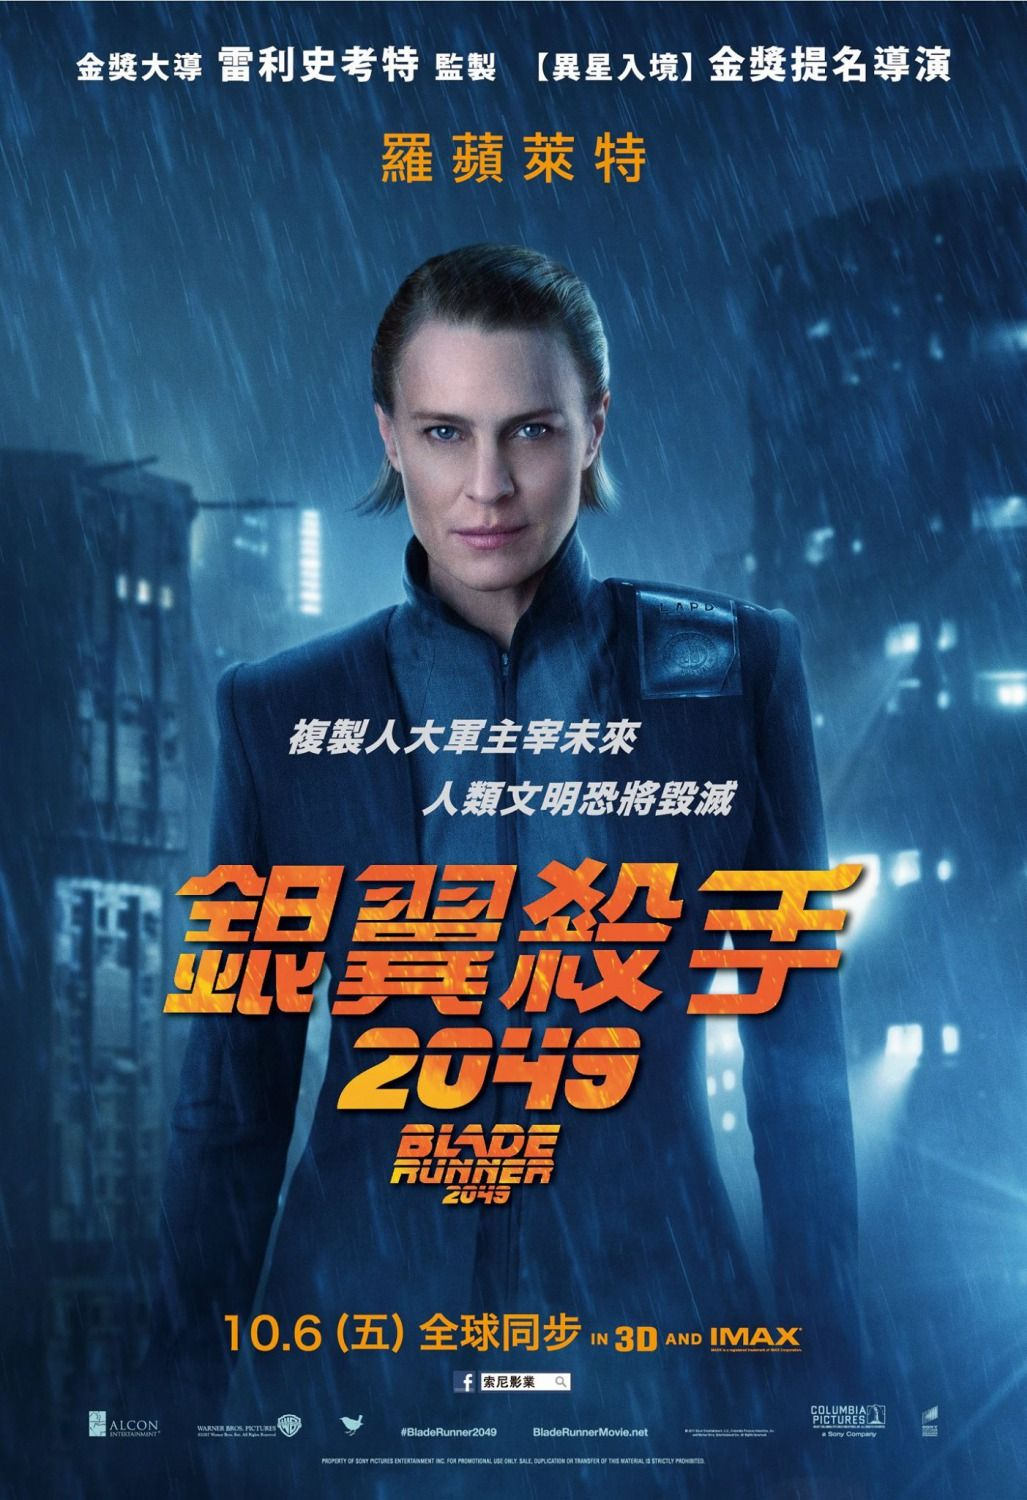 9338c5b3c New BLADE RUNNER 2049 Character Posters and a IMAX Promo Counts Down ...